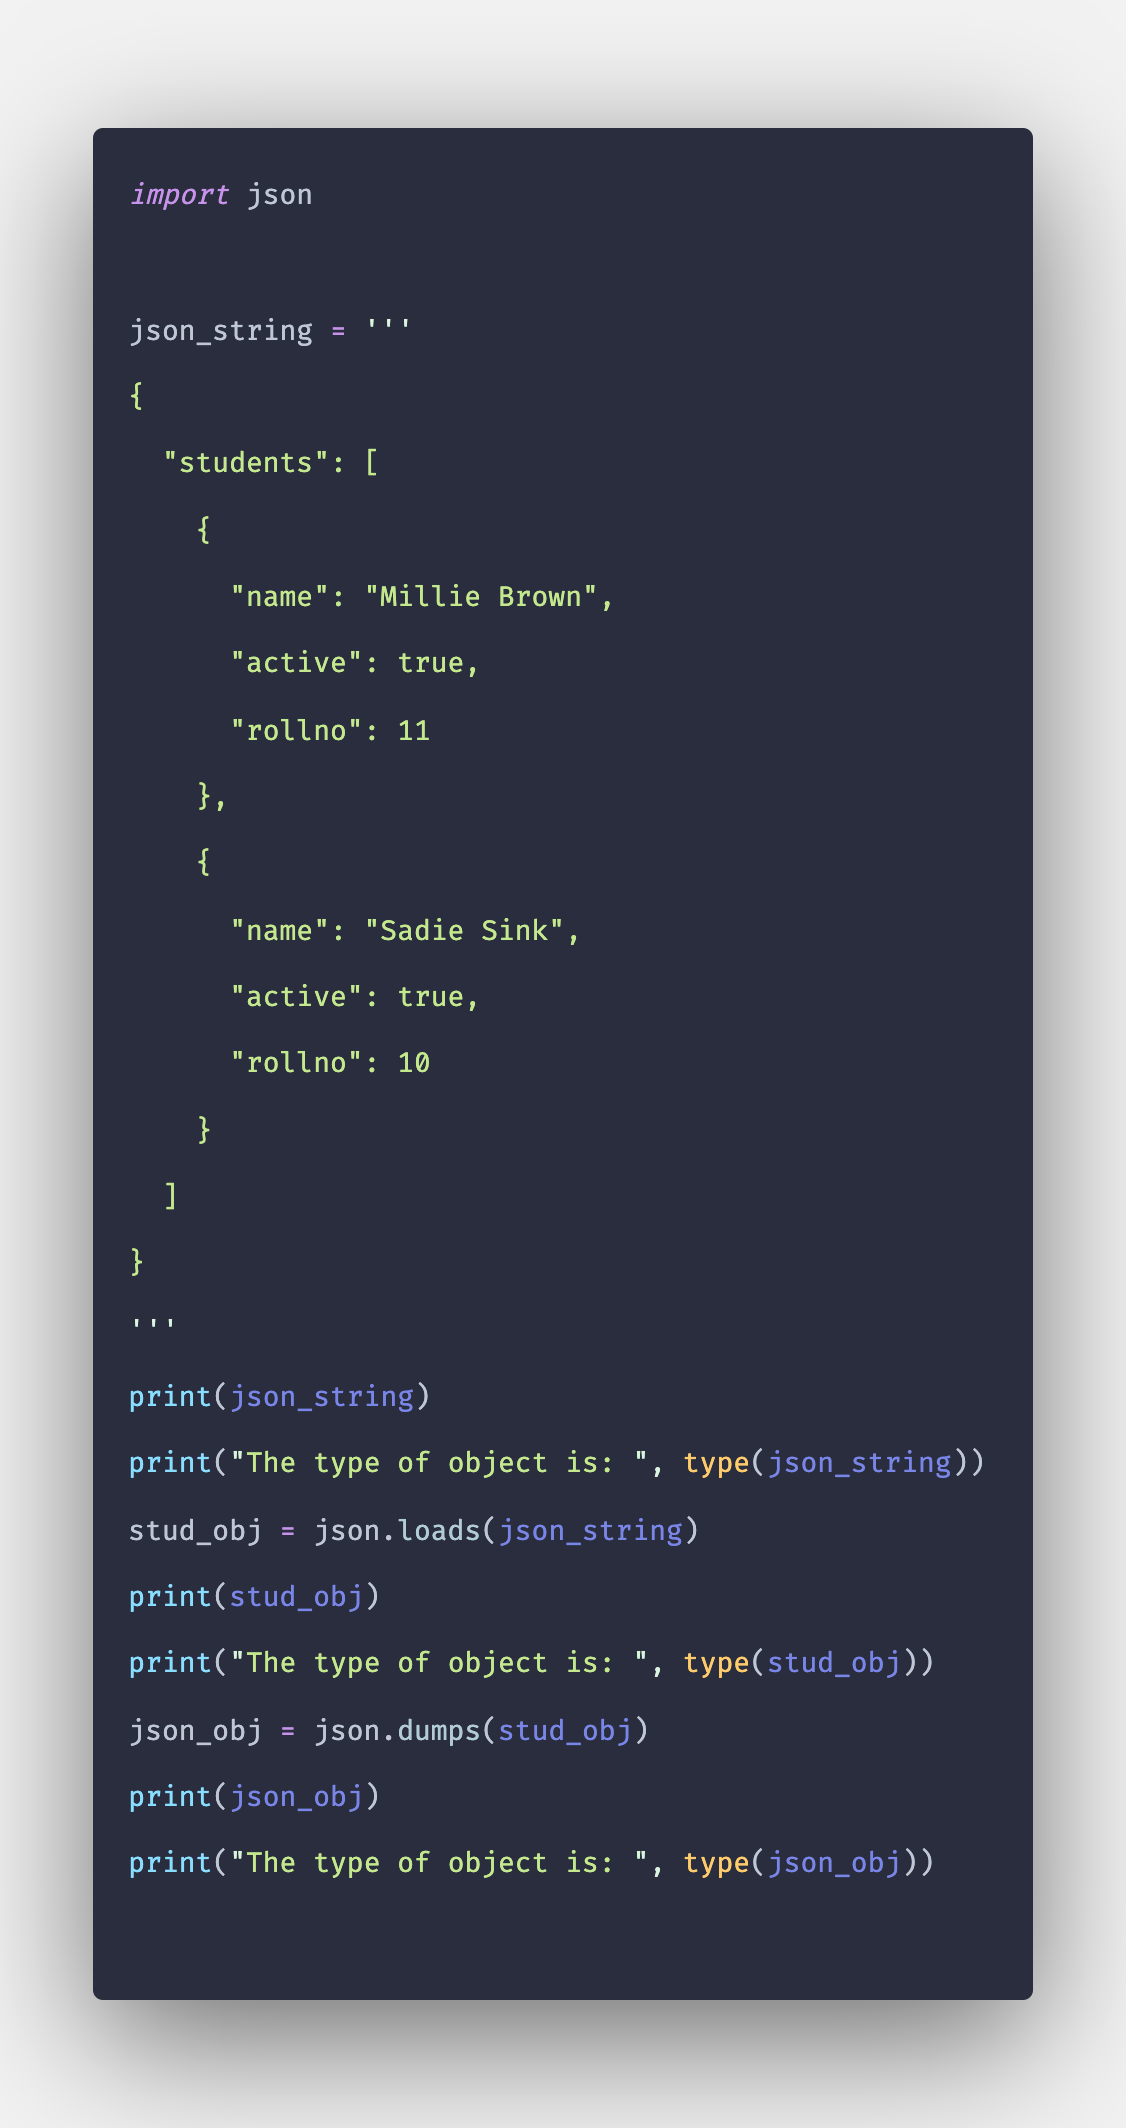 How to Convert Python String to JSON Object